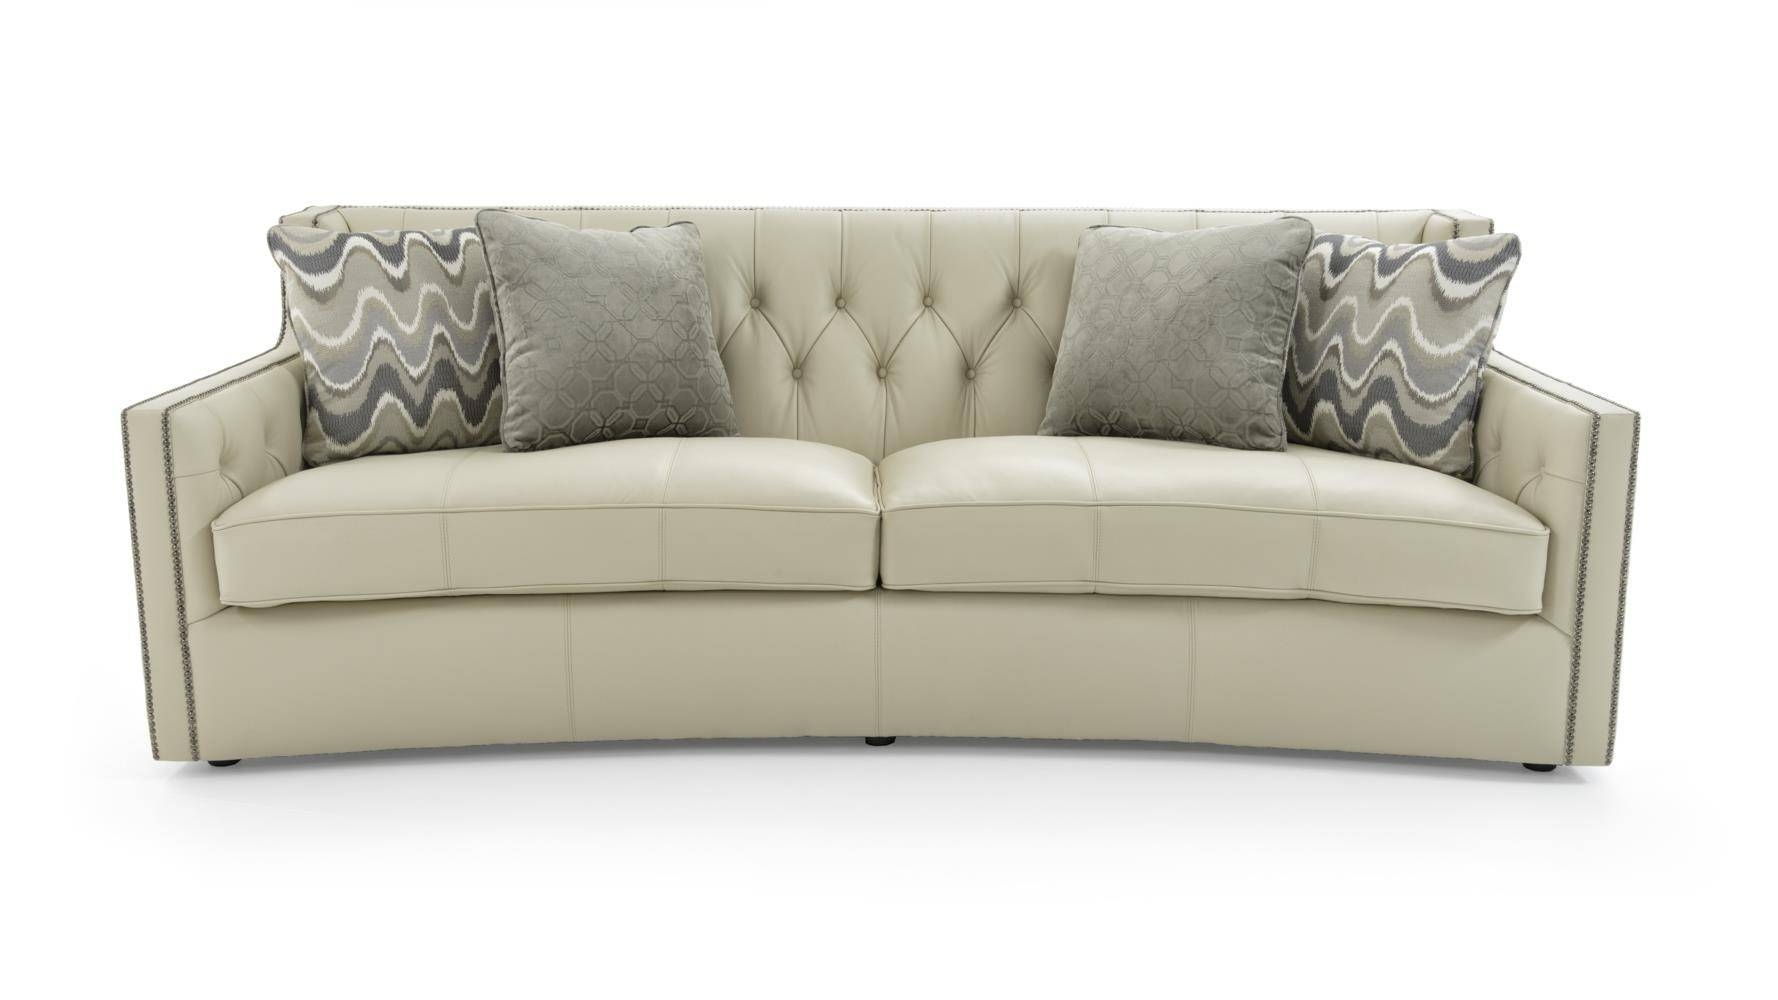 Leather Sofas | Ft. Lauderdale, Ft. Myers, Orlando, Naples, Miami within Sofas (Image 7 of 15)